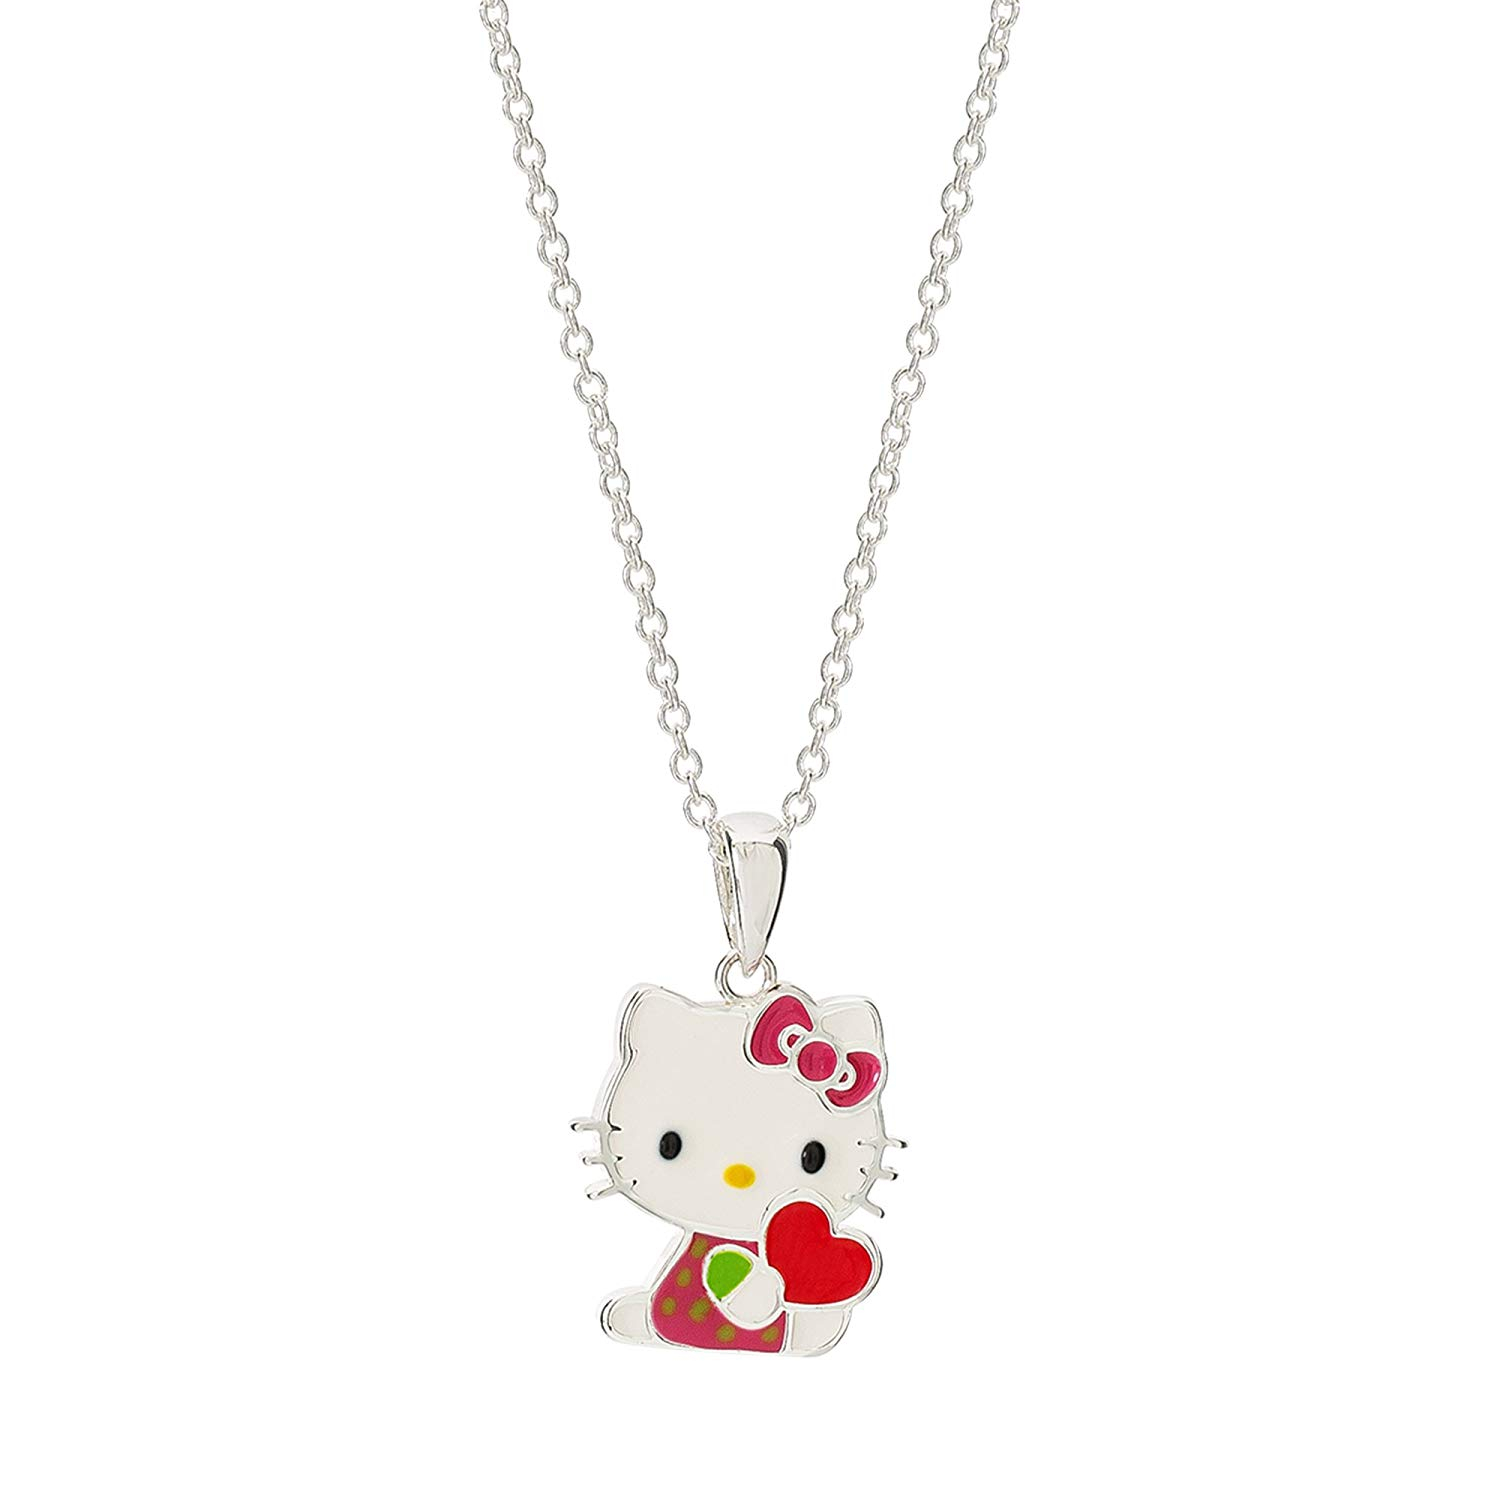 8587b209a Get Quotations · Hello Kitty Silver Plated Enamel Kitty with Heart Pendant  Necklace